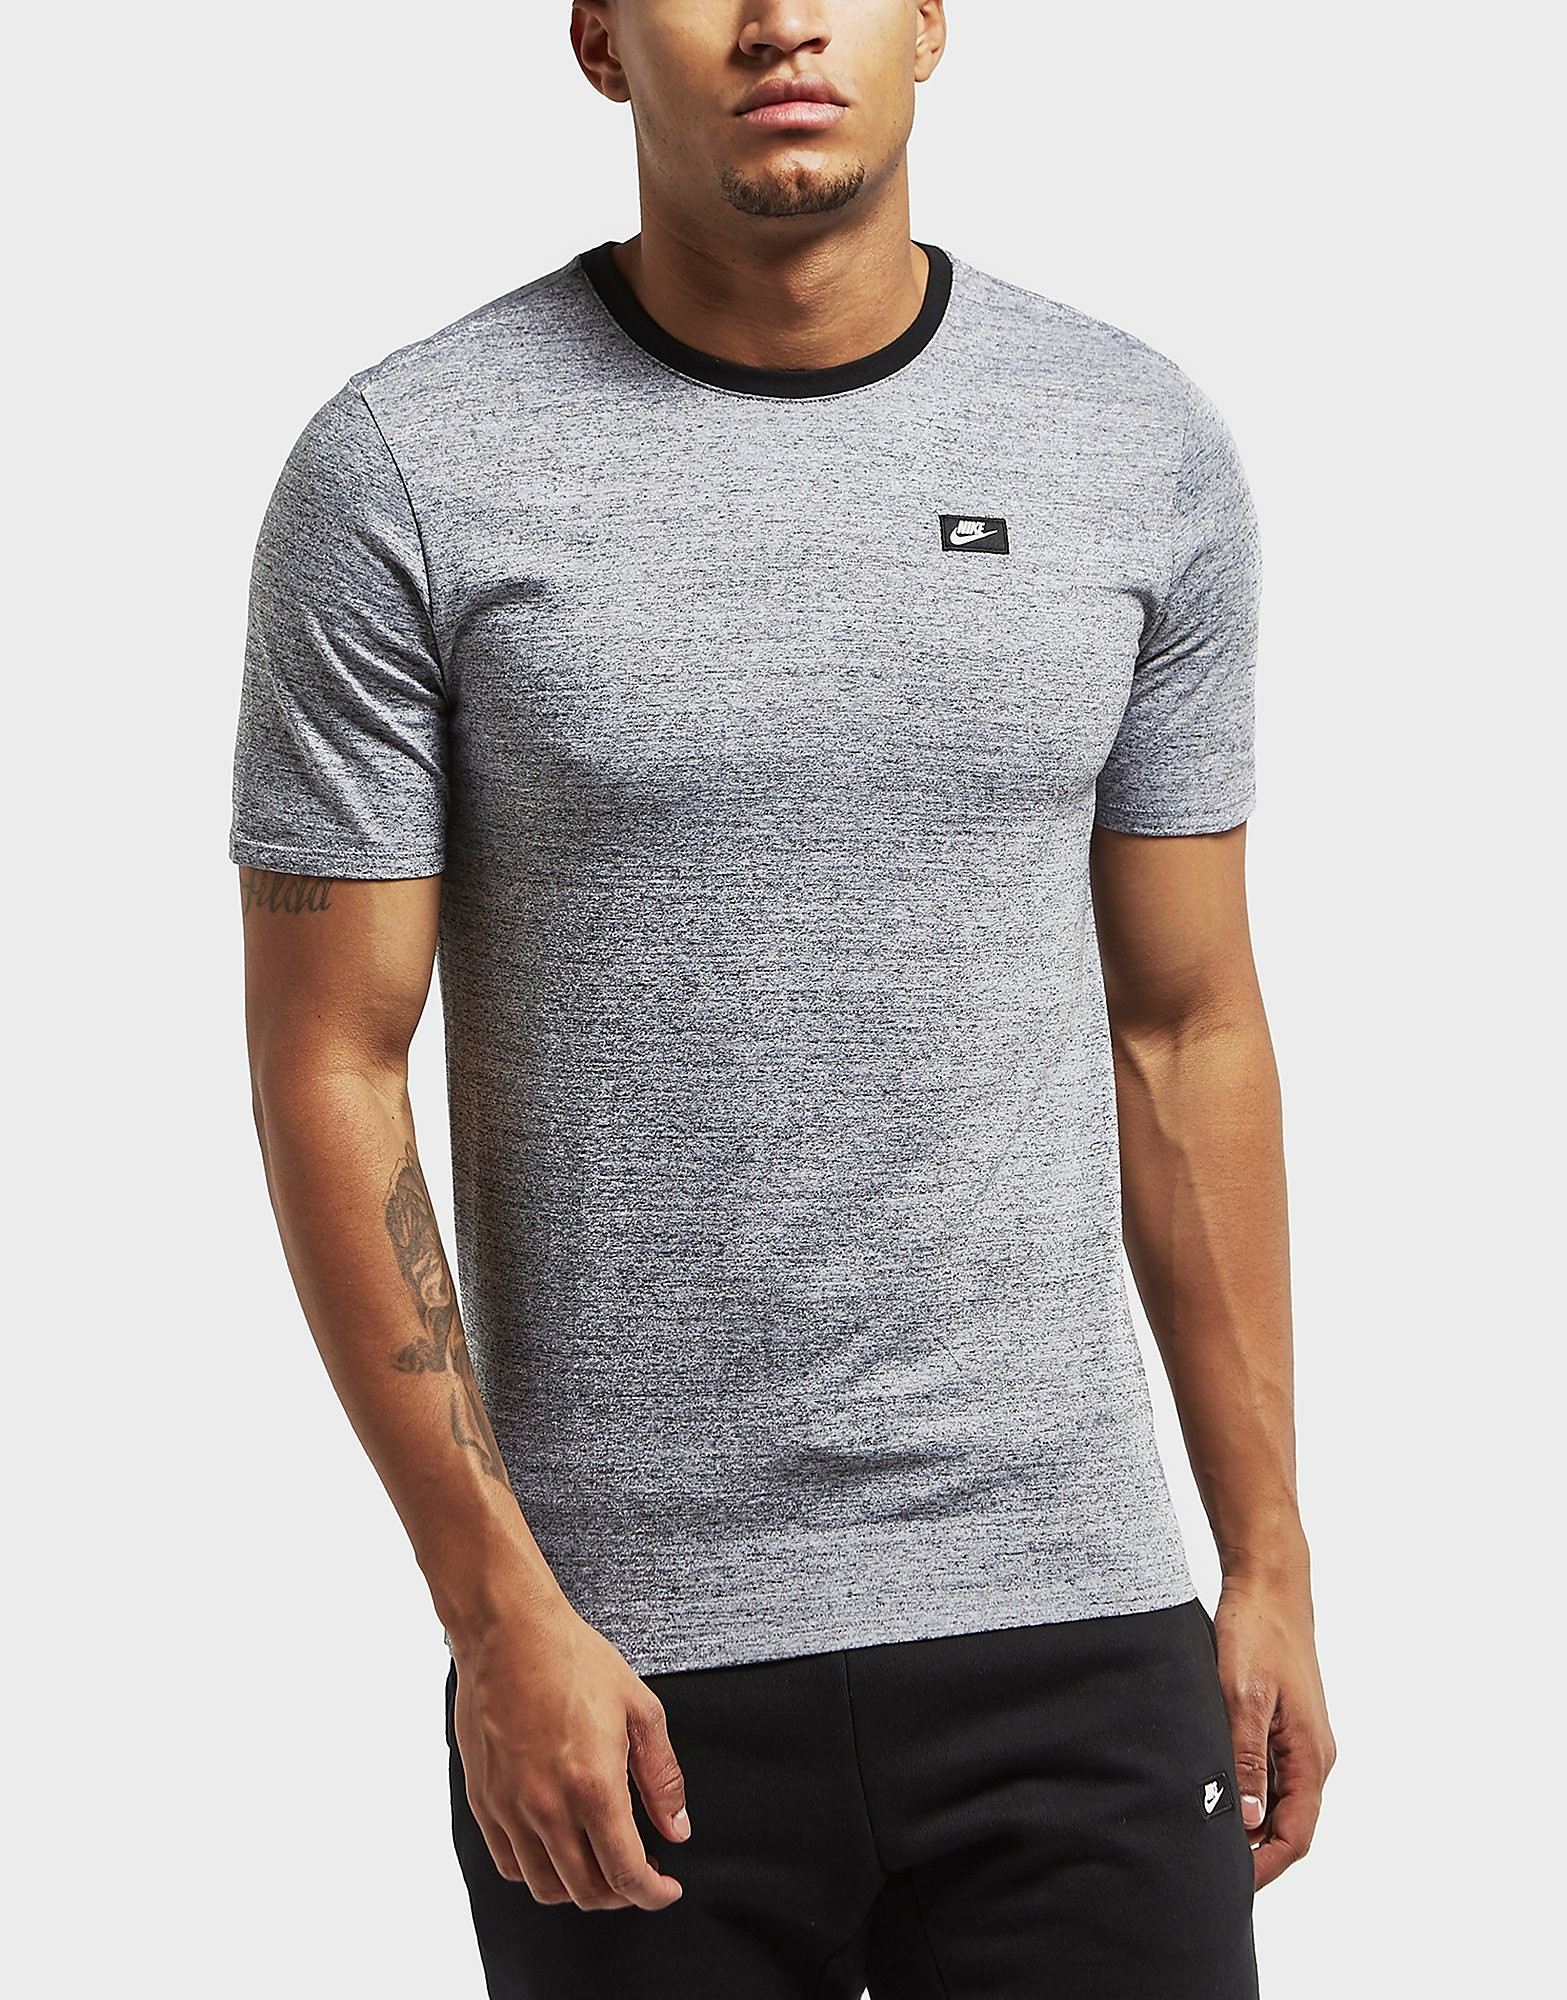 Nike Modern Short Sleeve T-Shirt